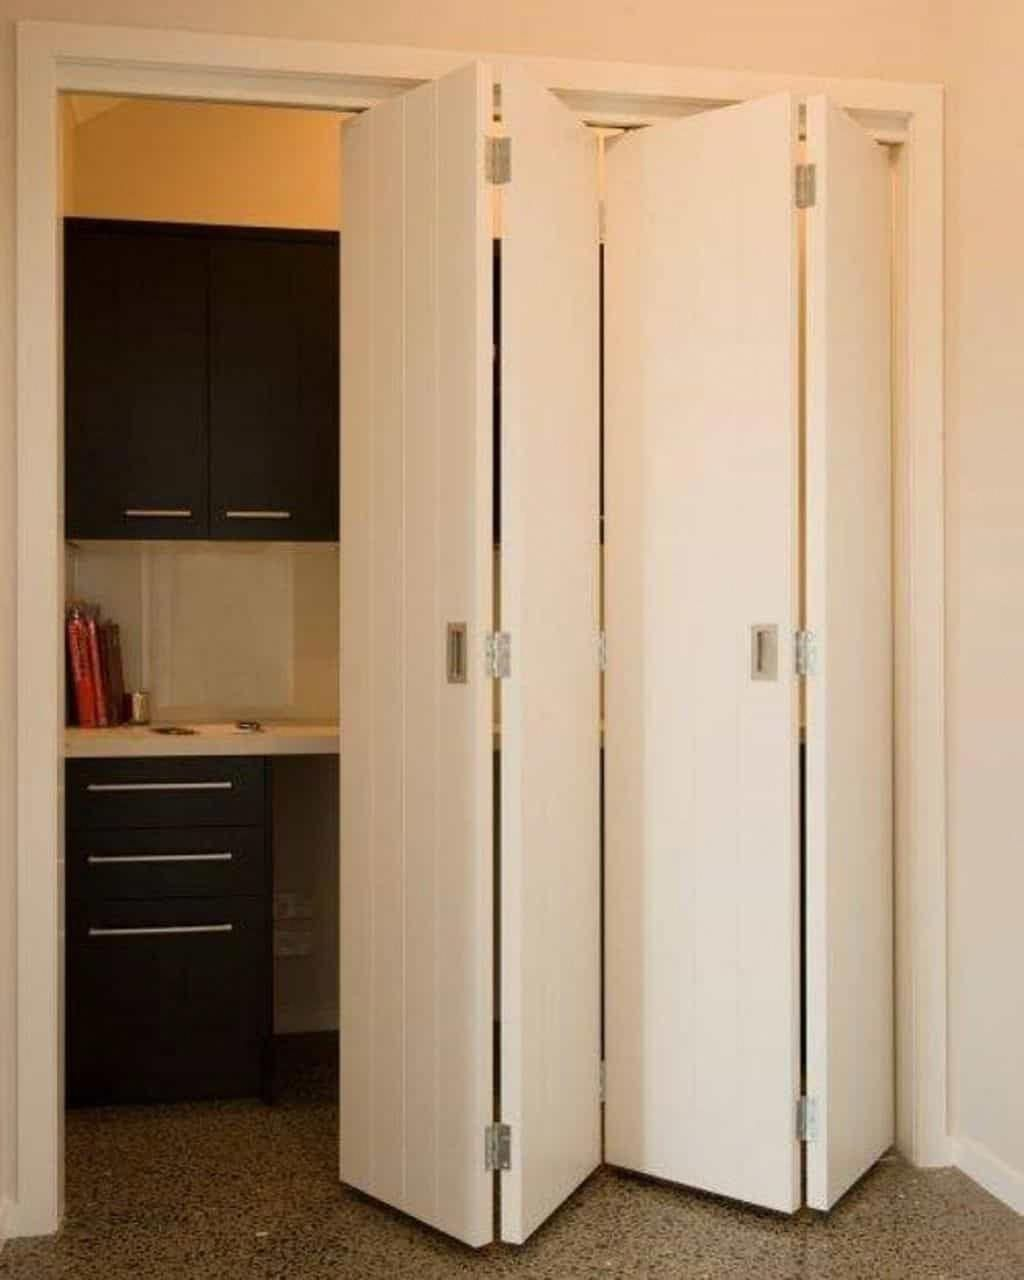 Glass French Doors Bathroom Doors Framing Sliding Closet Doors 20191021 Puertas Plegables Interiors Puertas Plegables Puerta Corrediza Madera